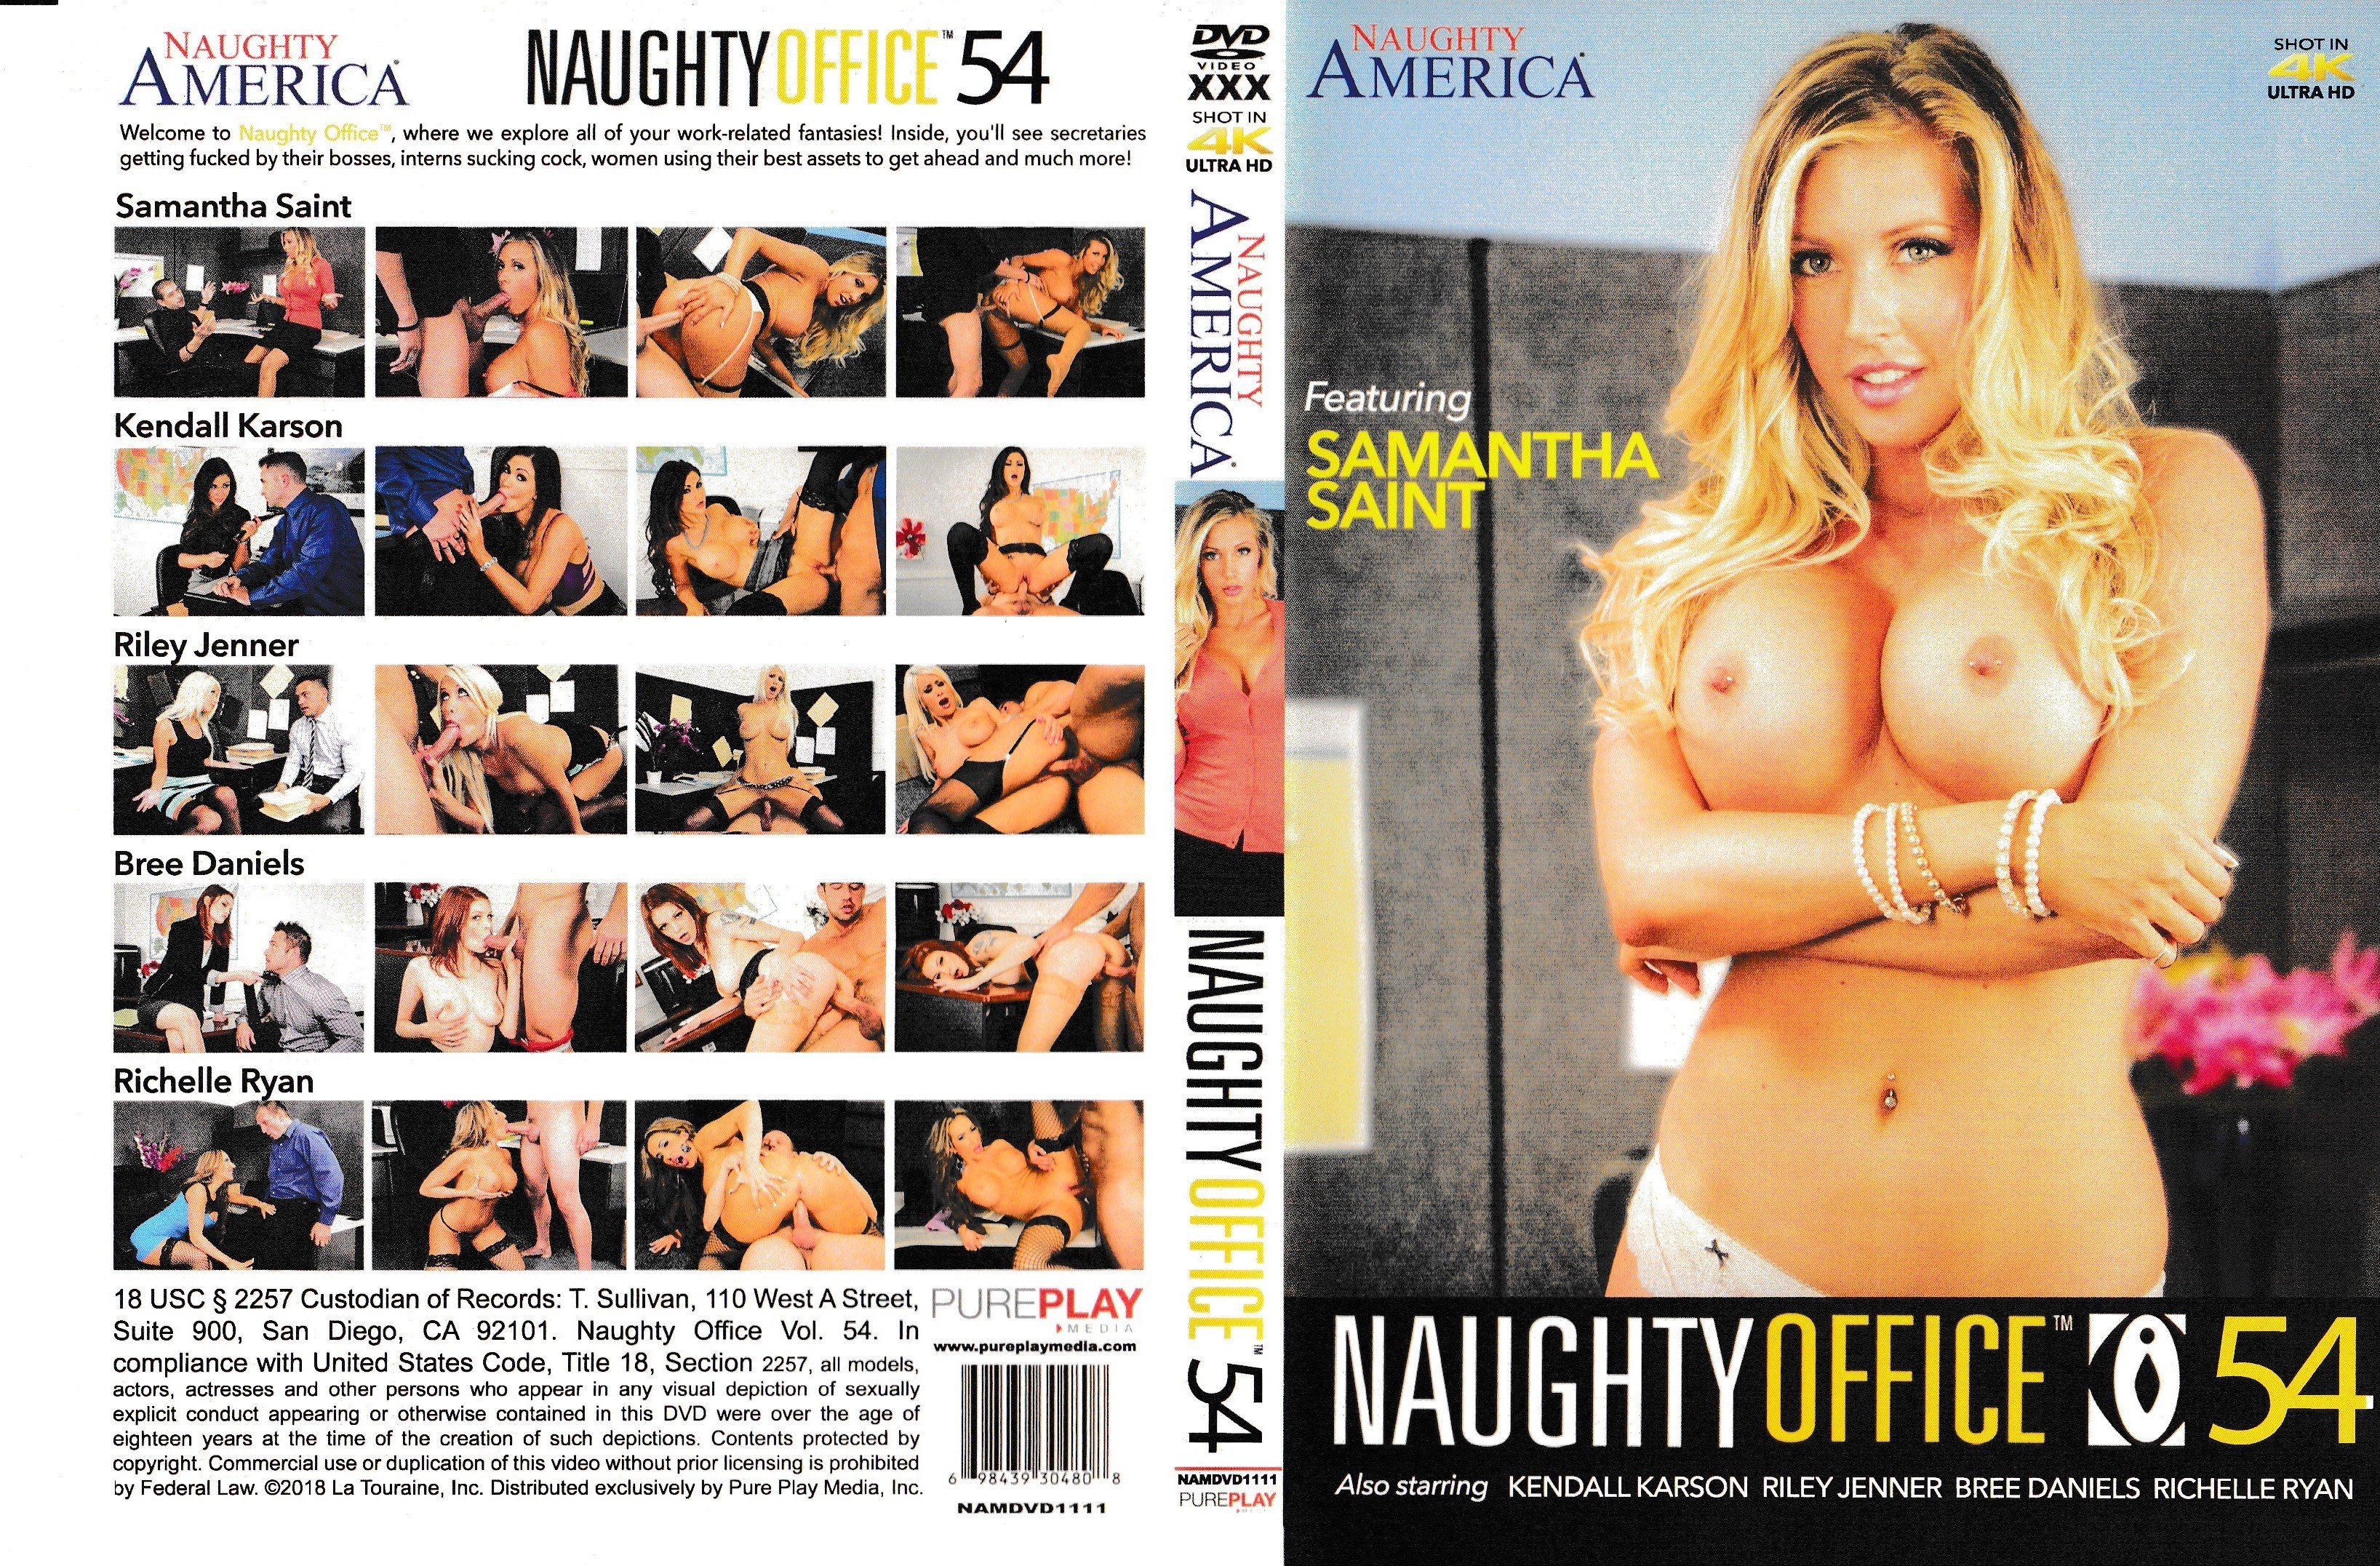 Ch 16:  Naughty Office 54